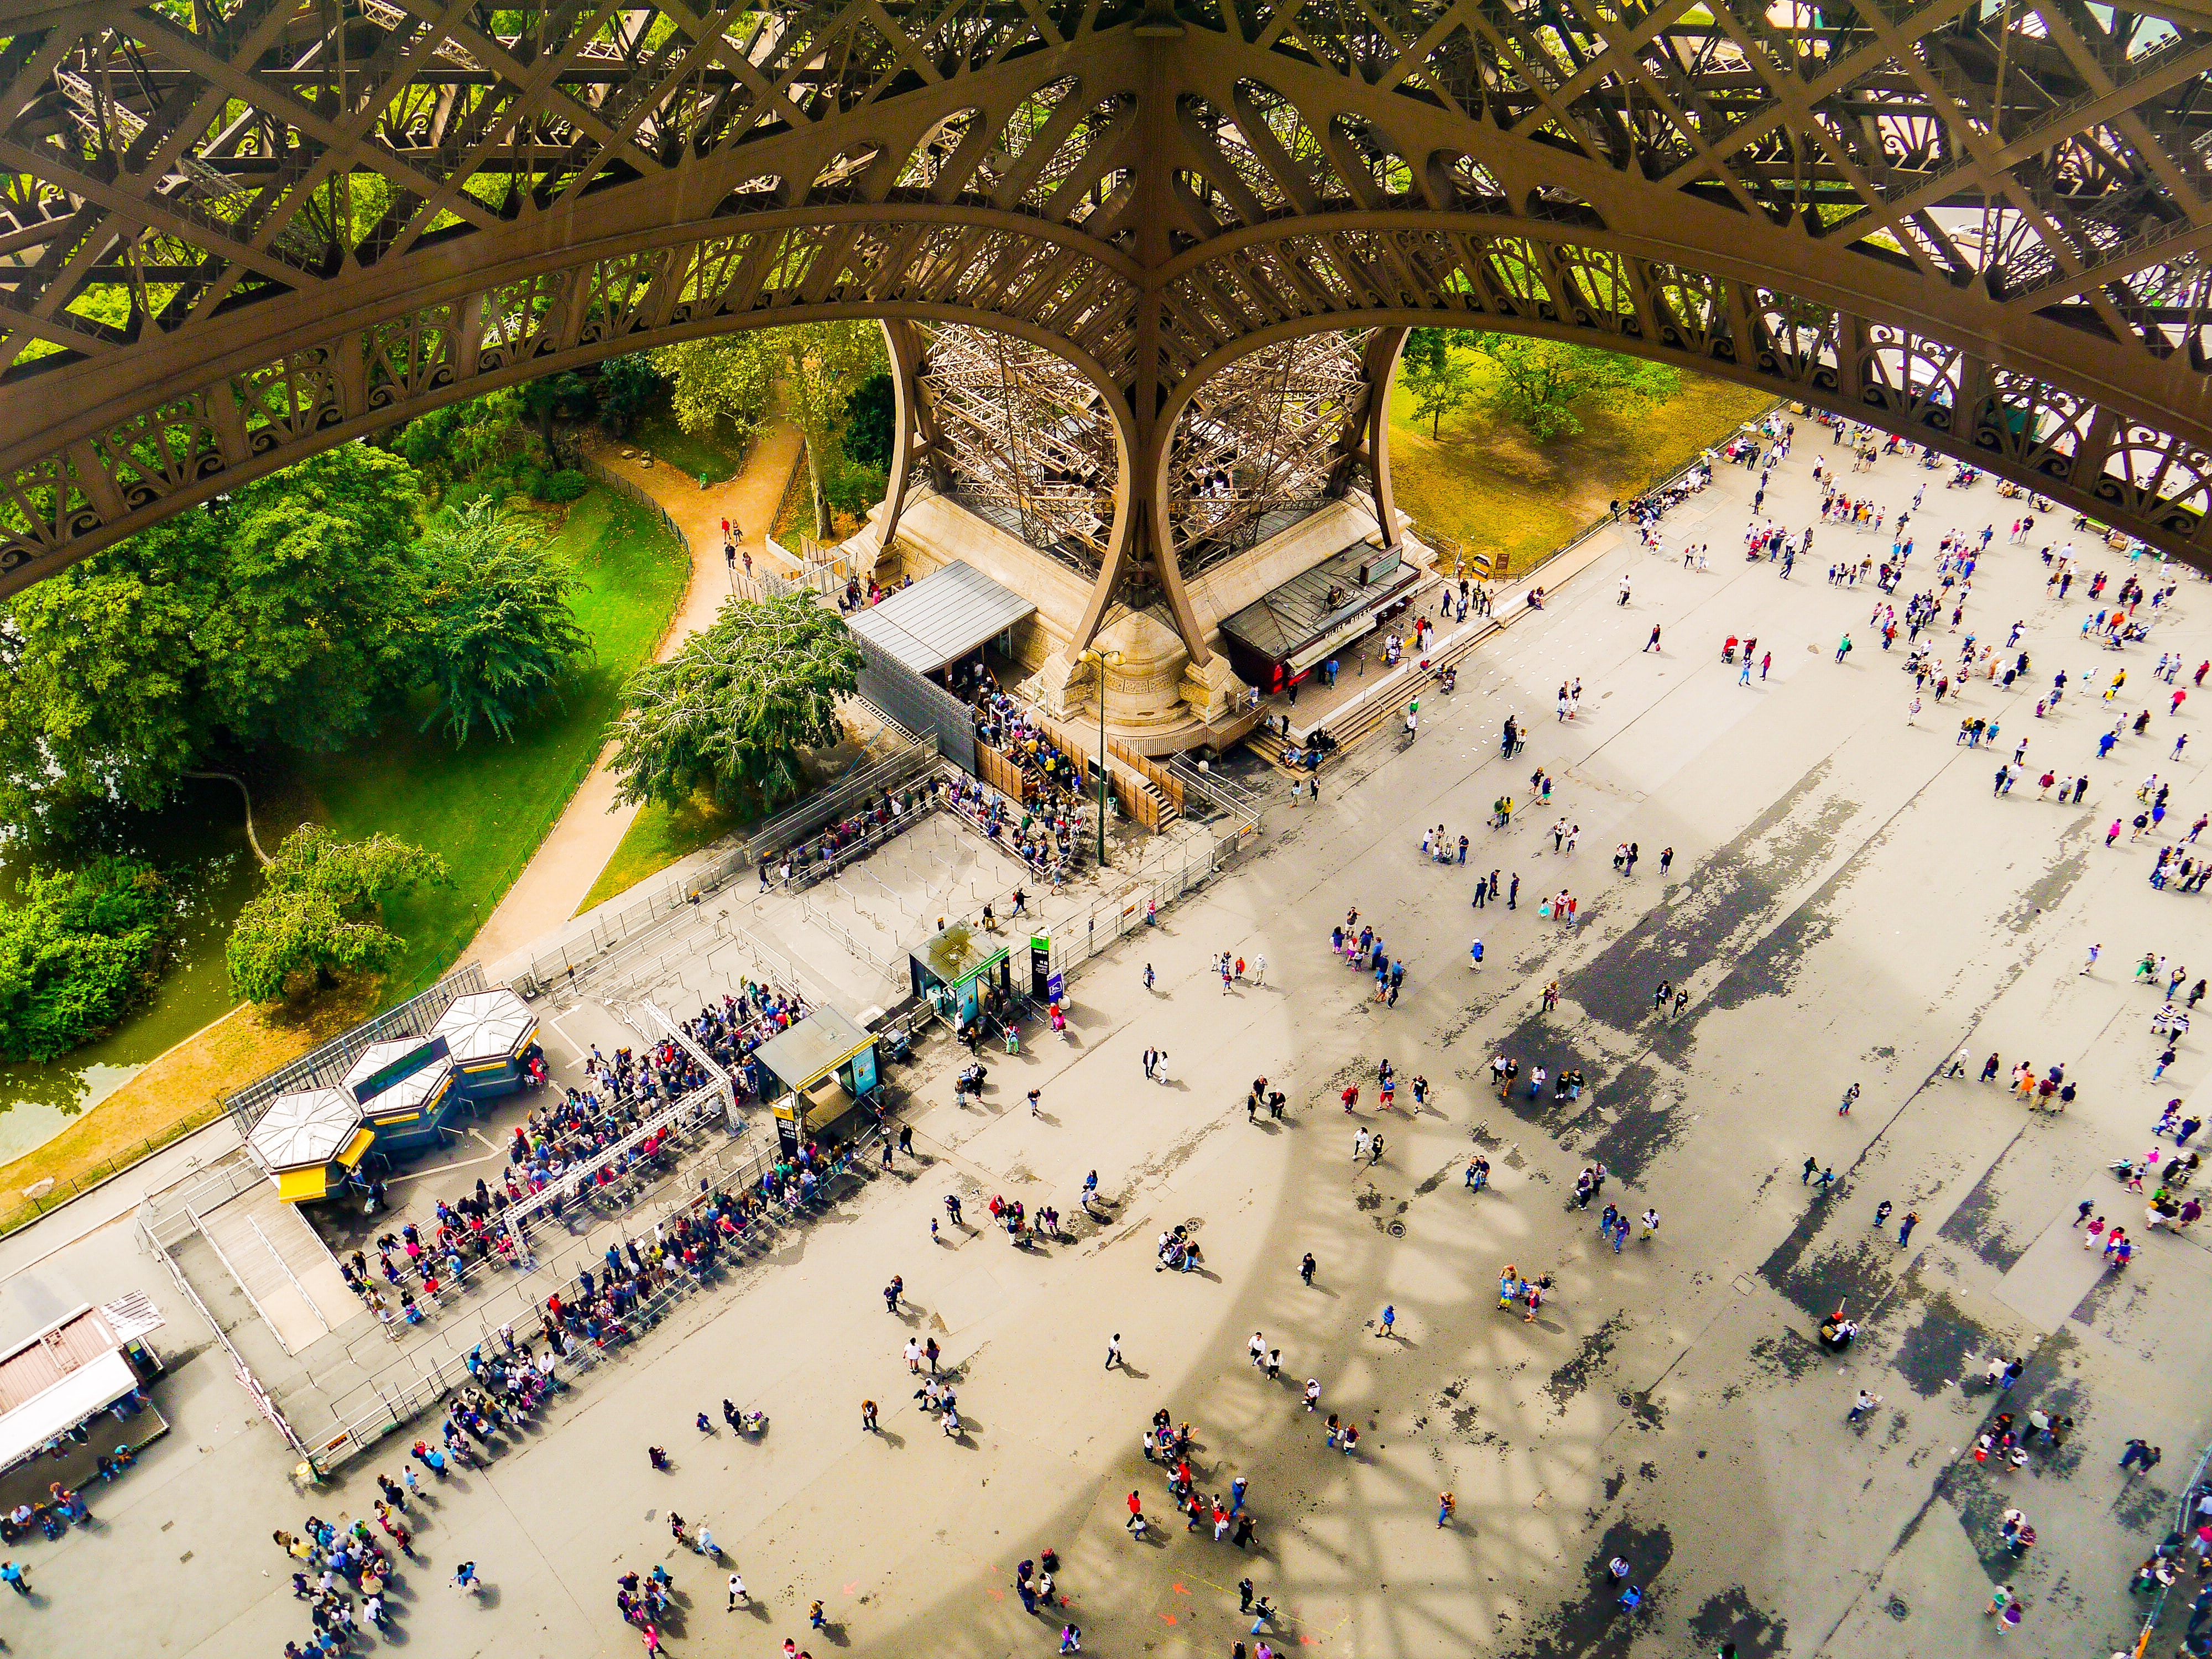 low-angle photography of people under Eiffel tower during daytime